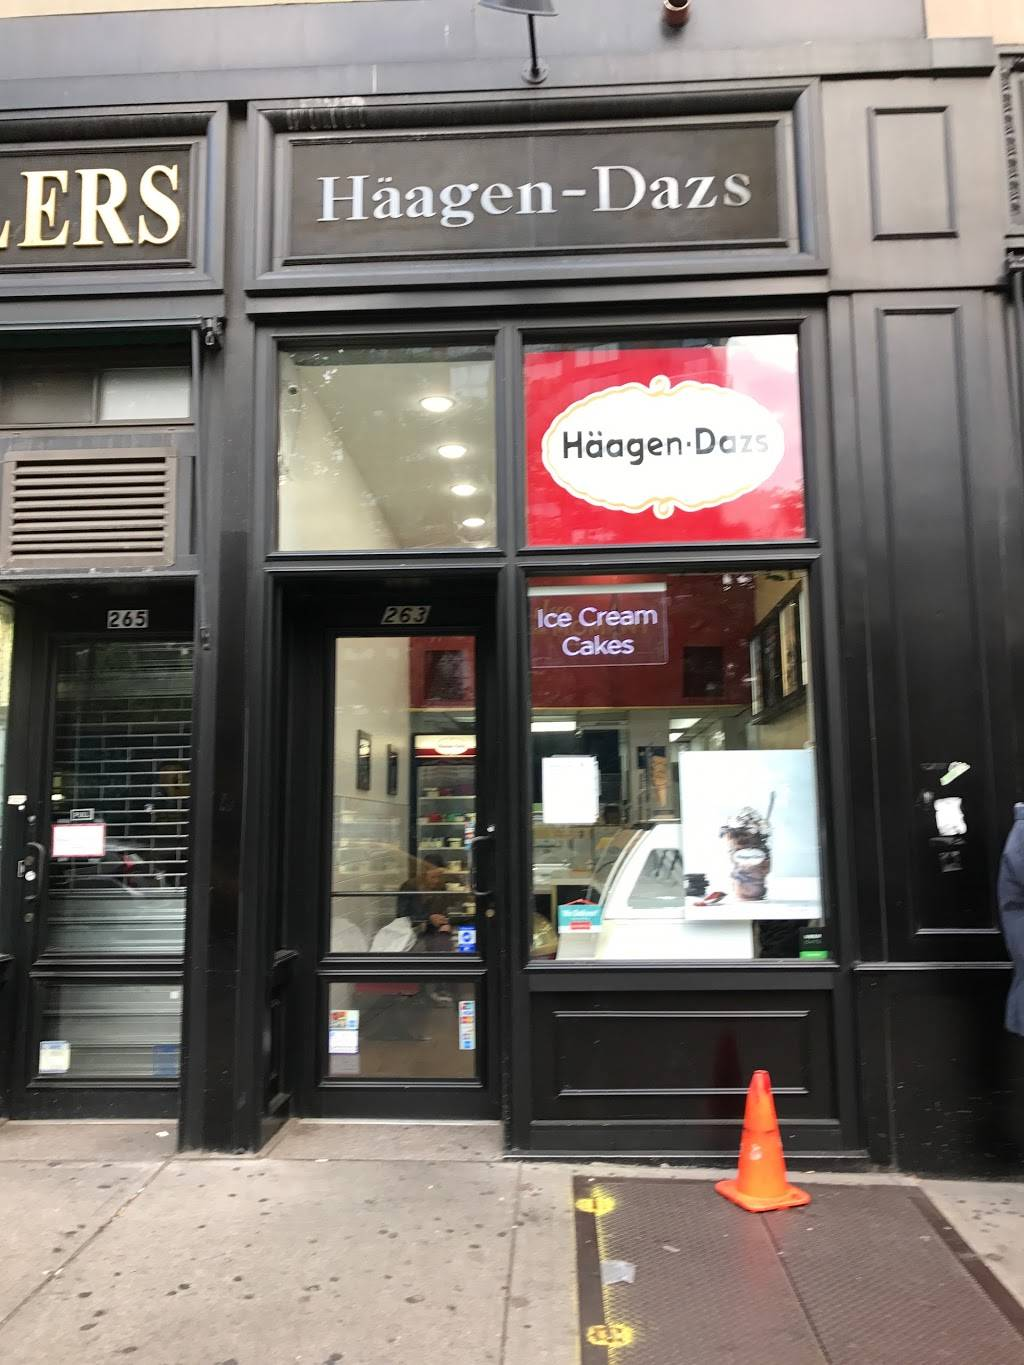 Haagen-Dazs | restaurant | 263 Amsterdam Ave, New York, NY 10023, USA | 2127877165 OR +1 212-787-7165